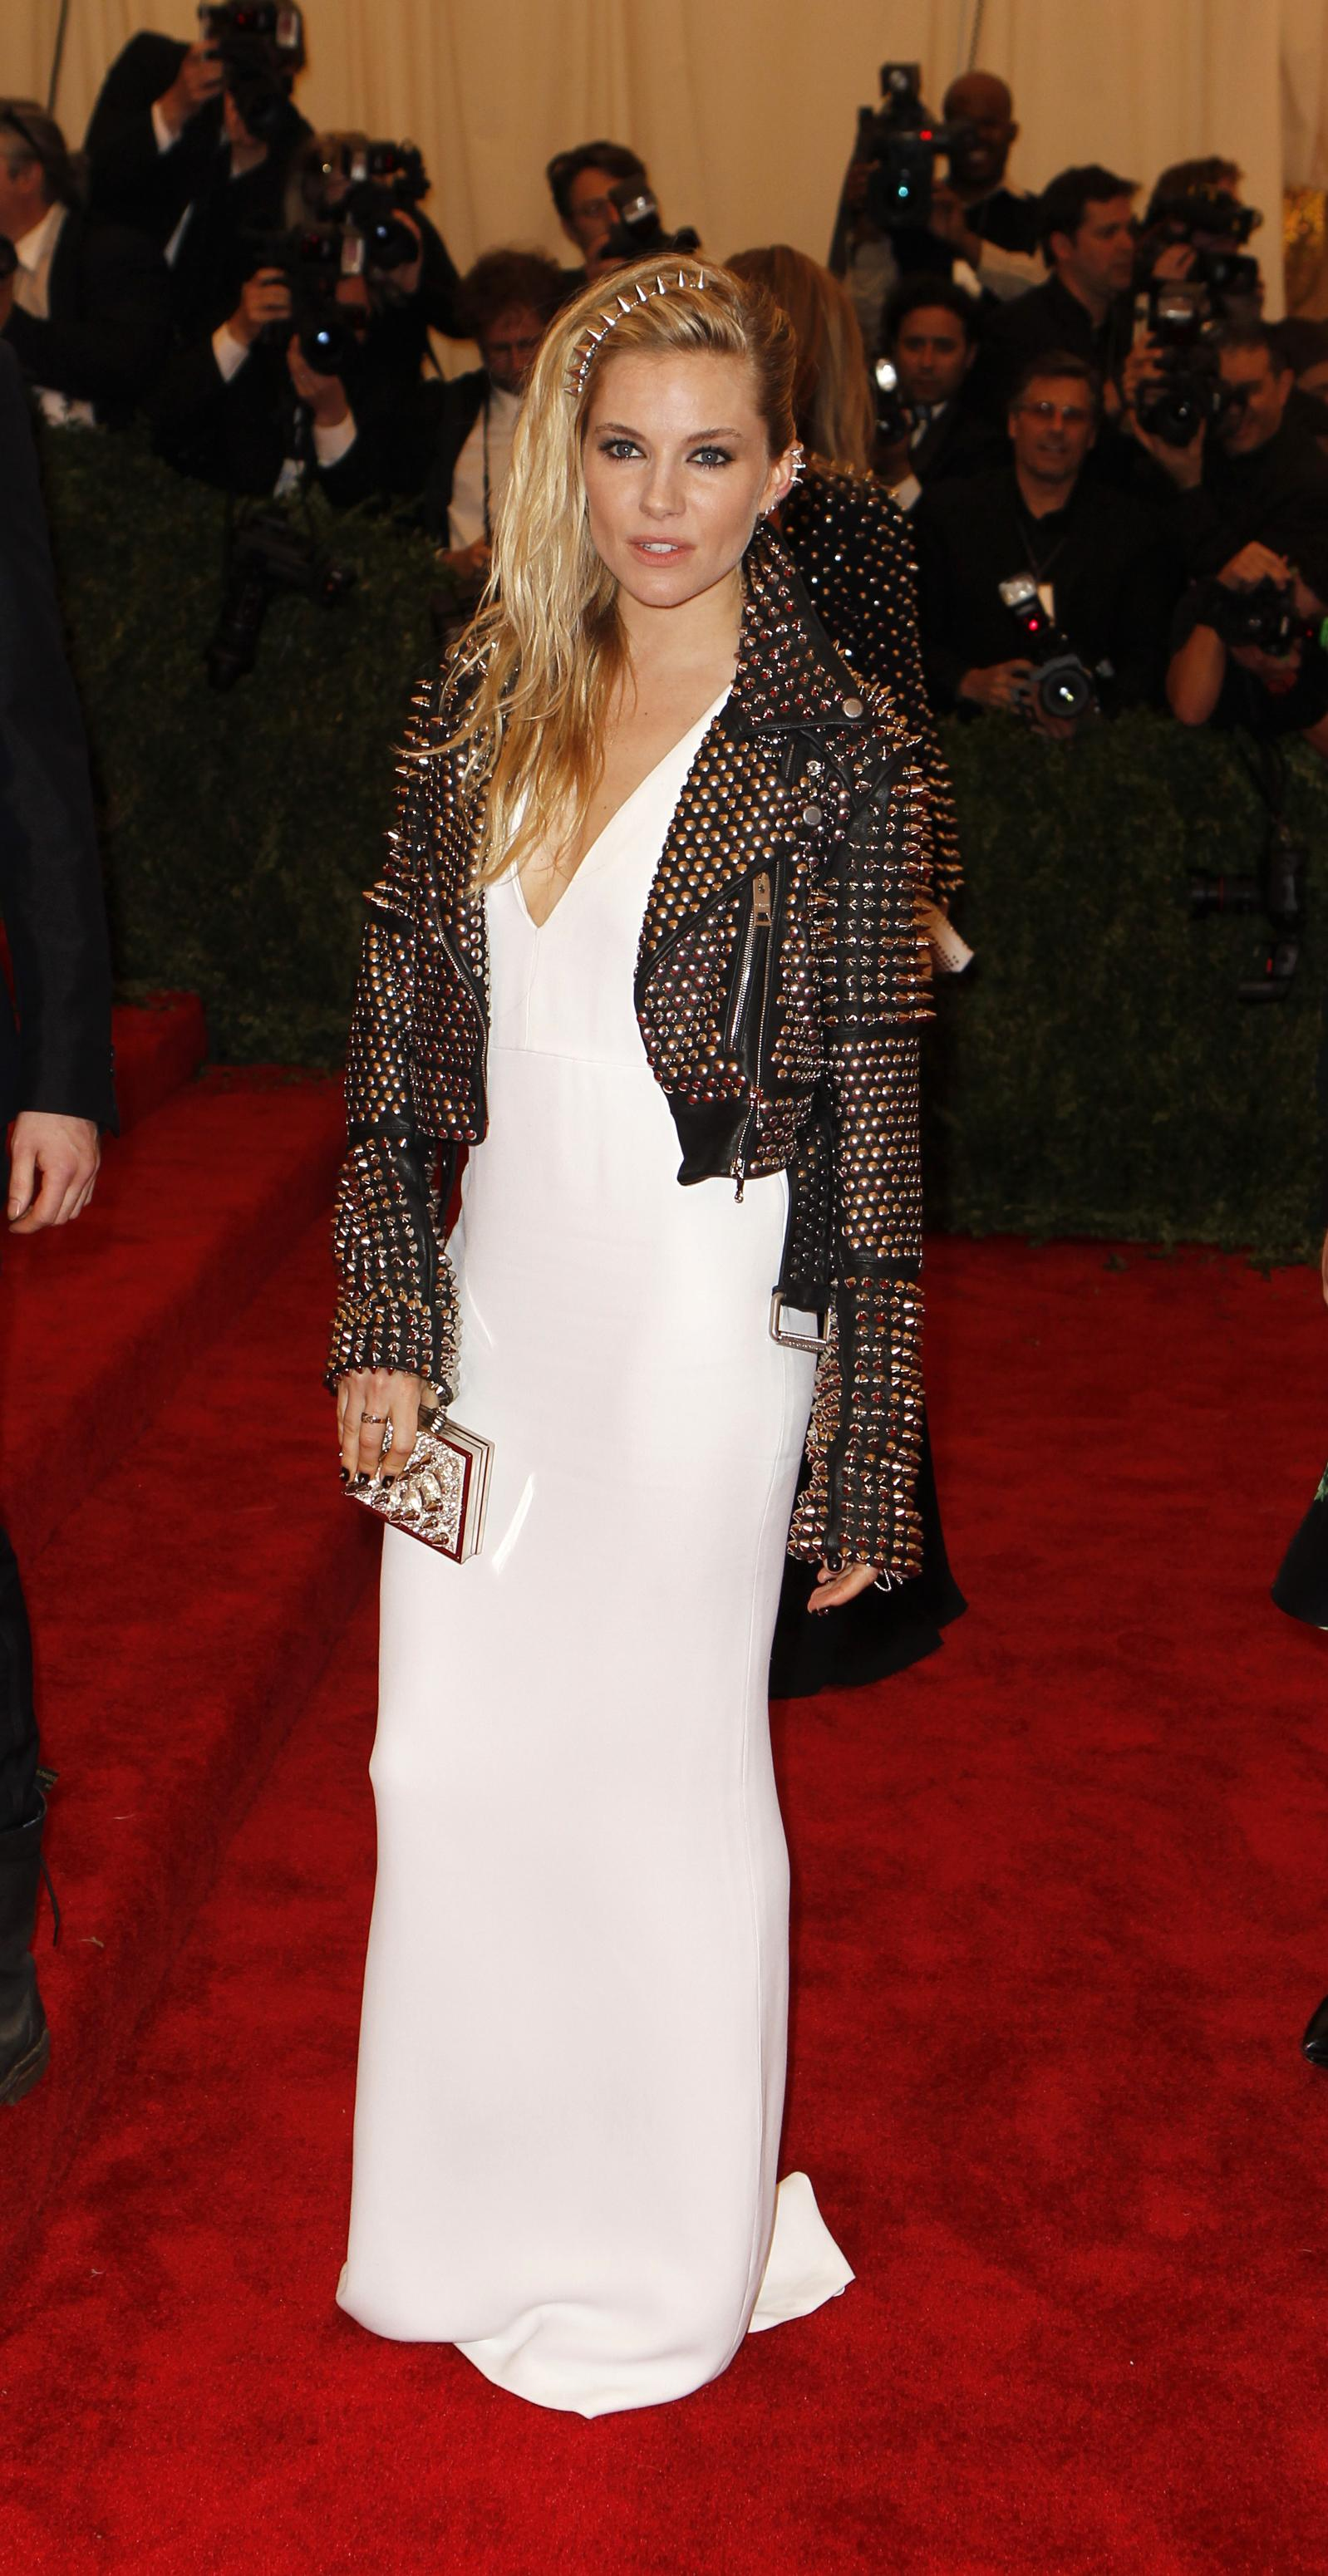 Sienna Miller at the 2013 Met Gala